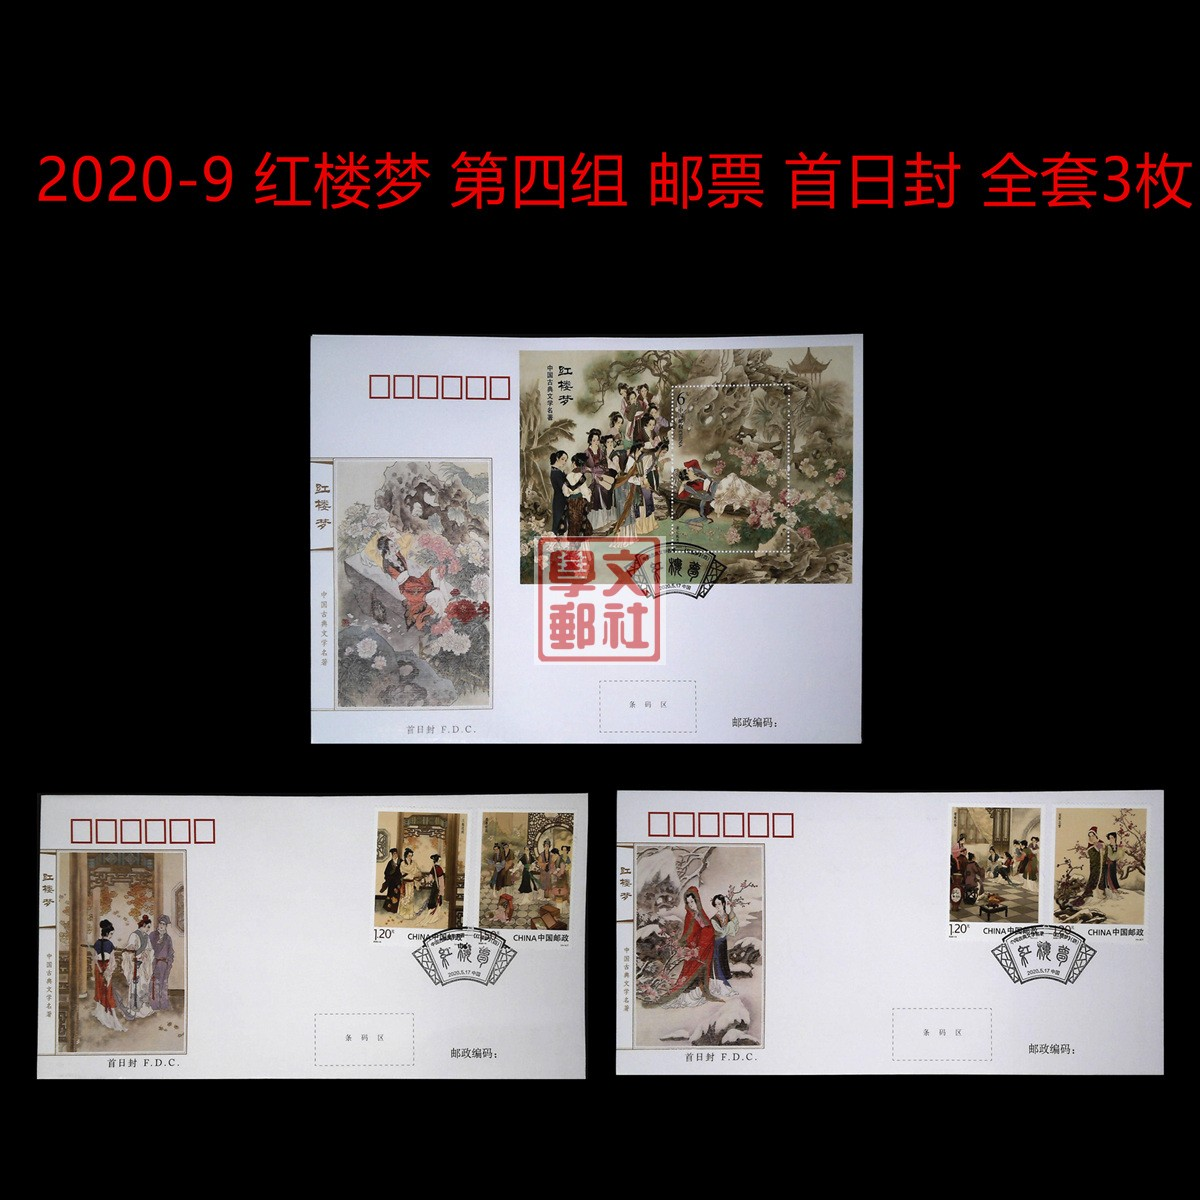 2020-9 Red Mansion Dream Group 4 Stamps First Day Seal set of 3 China Stamp Collecting Corporation.